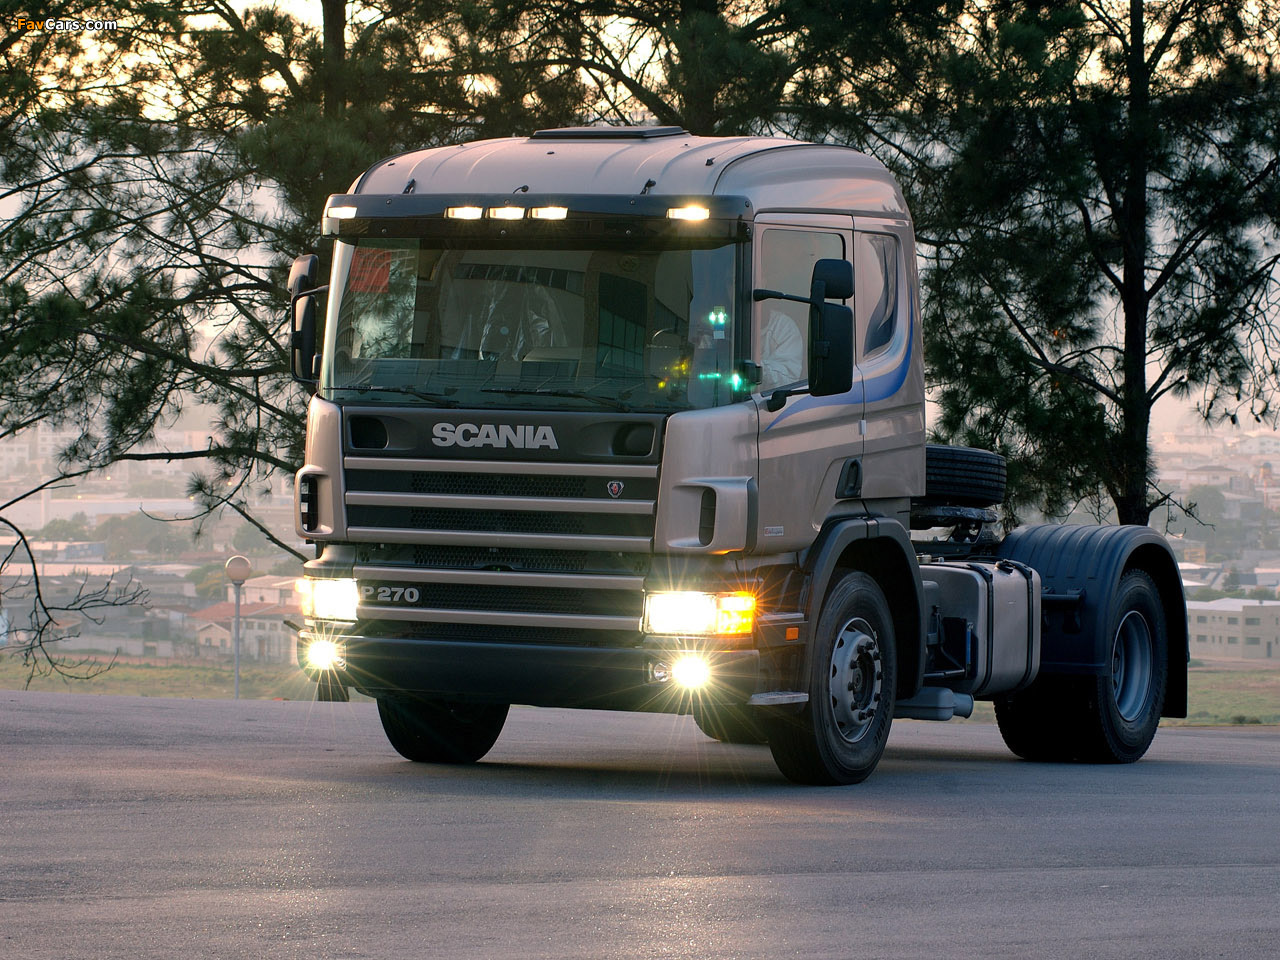 Scania P270 4x2 Griffin 2001 images (1280 x 960)